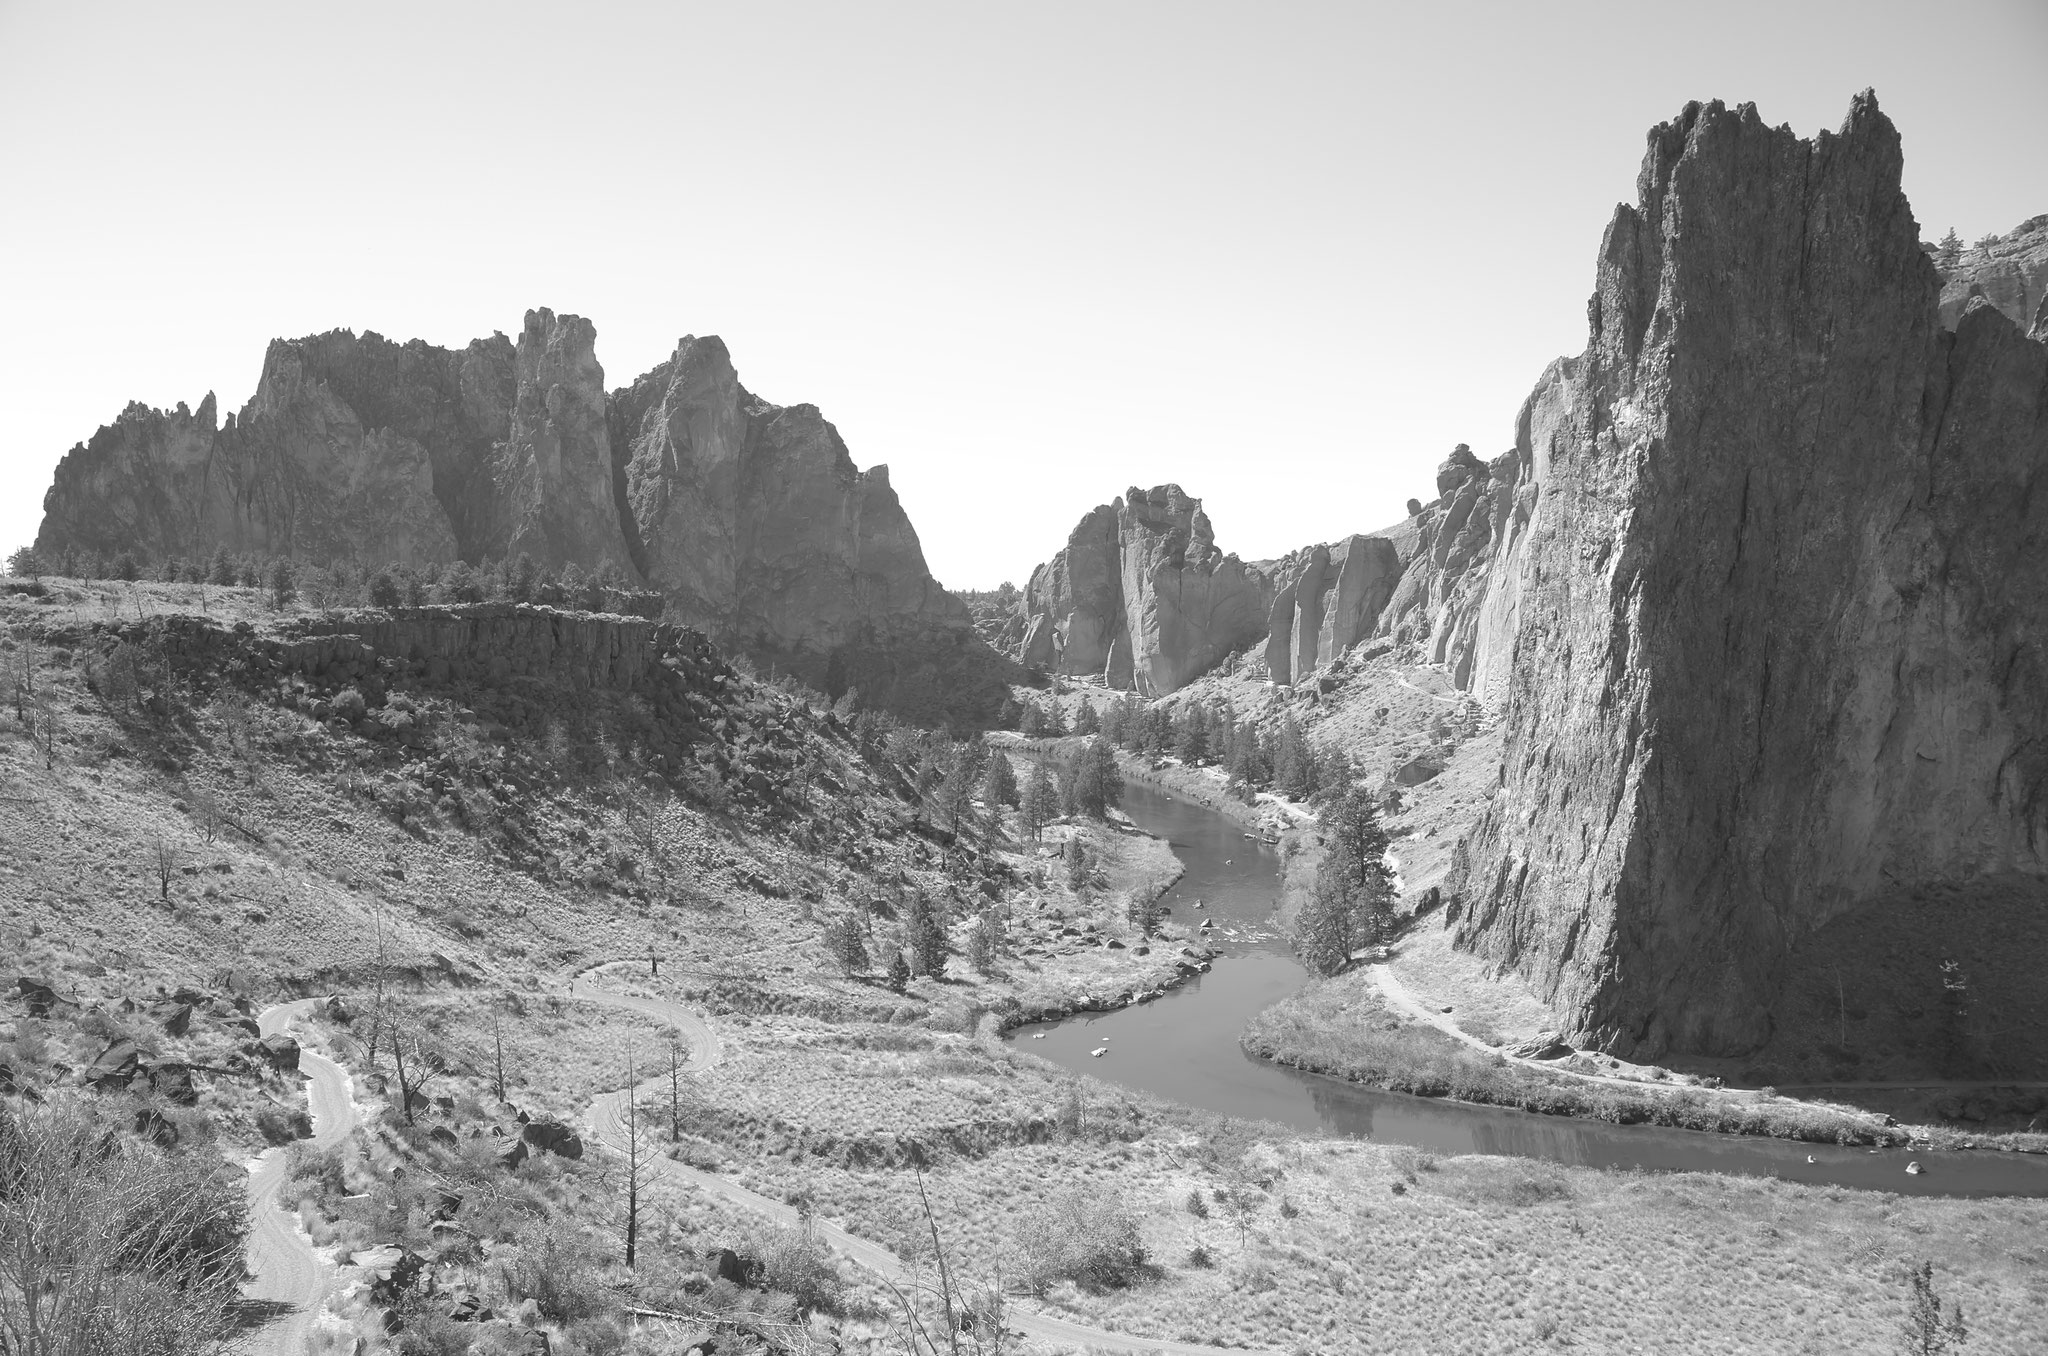 Smith Rock, U.S., Elmarit 24(36)mm